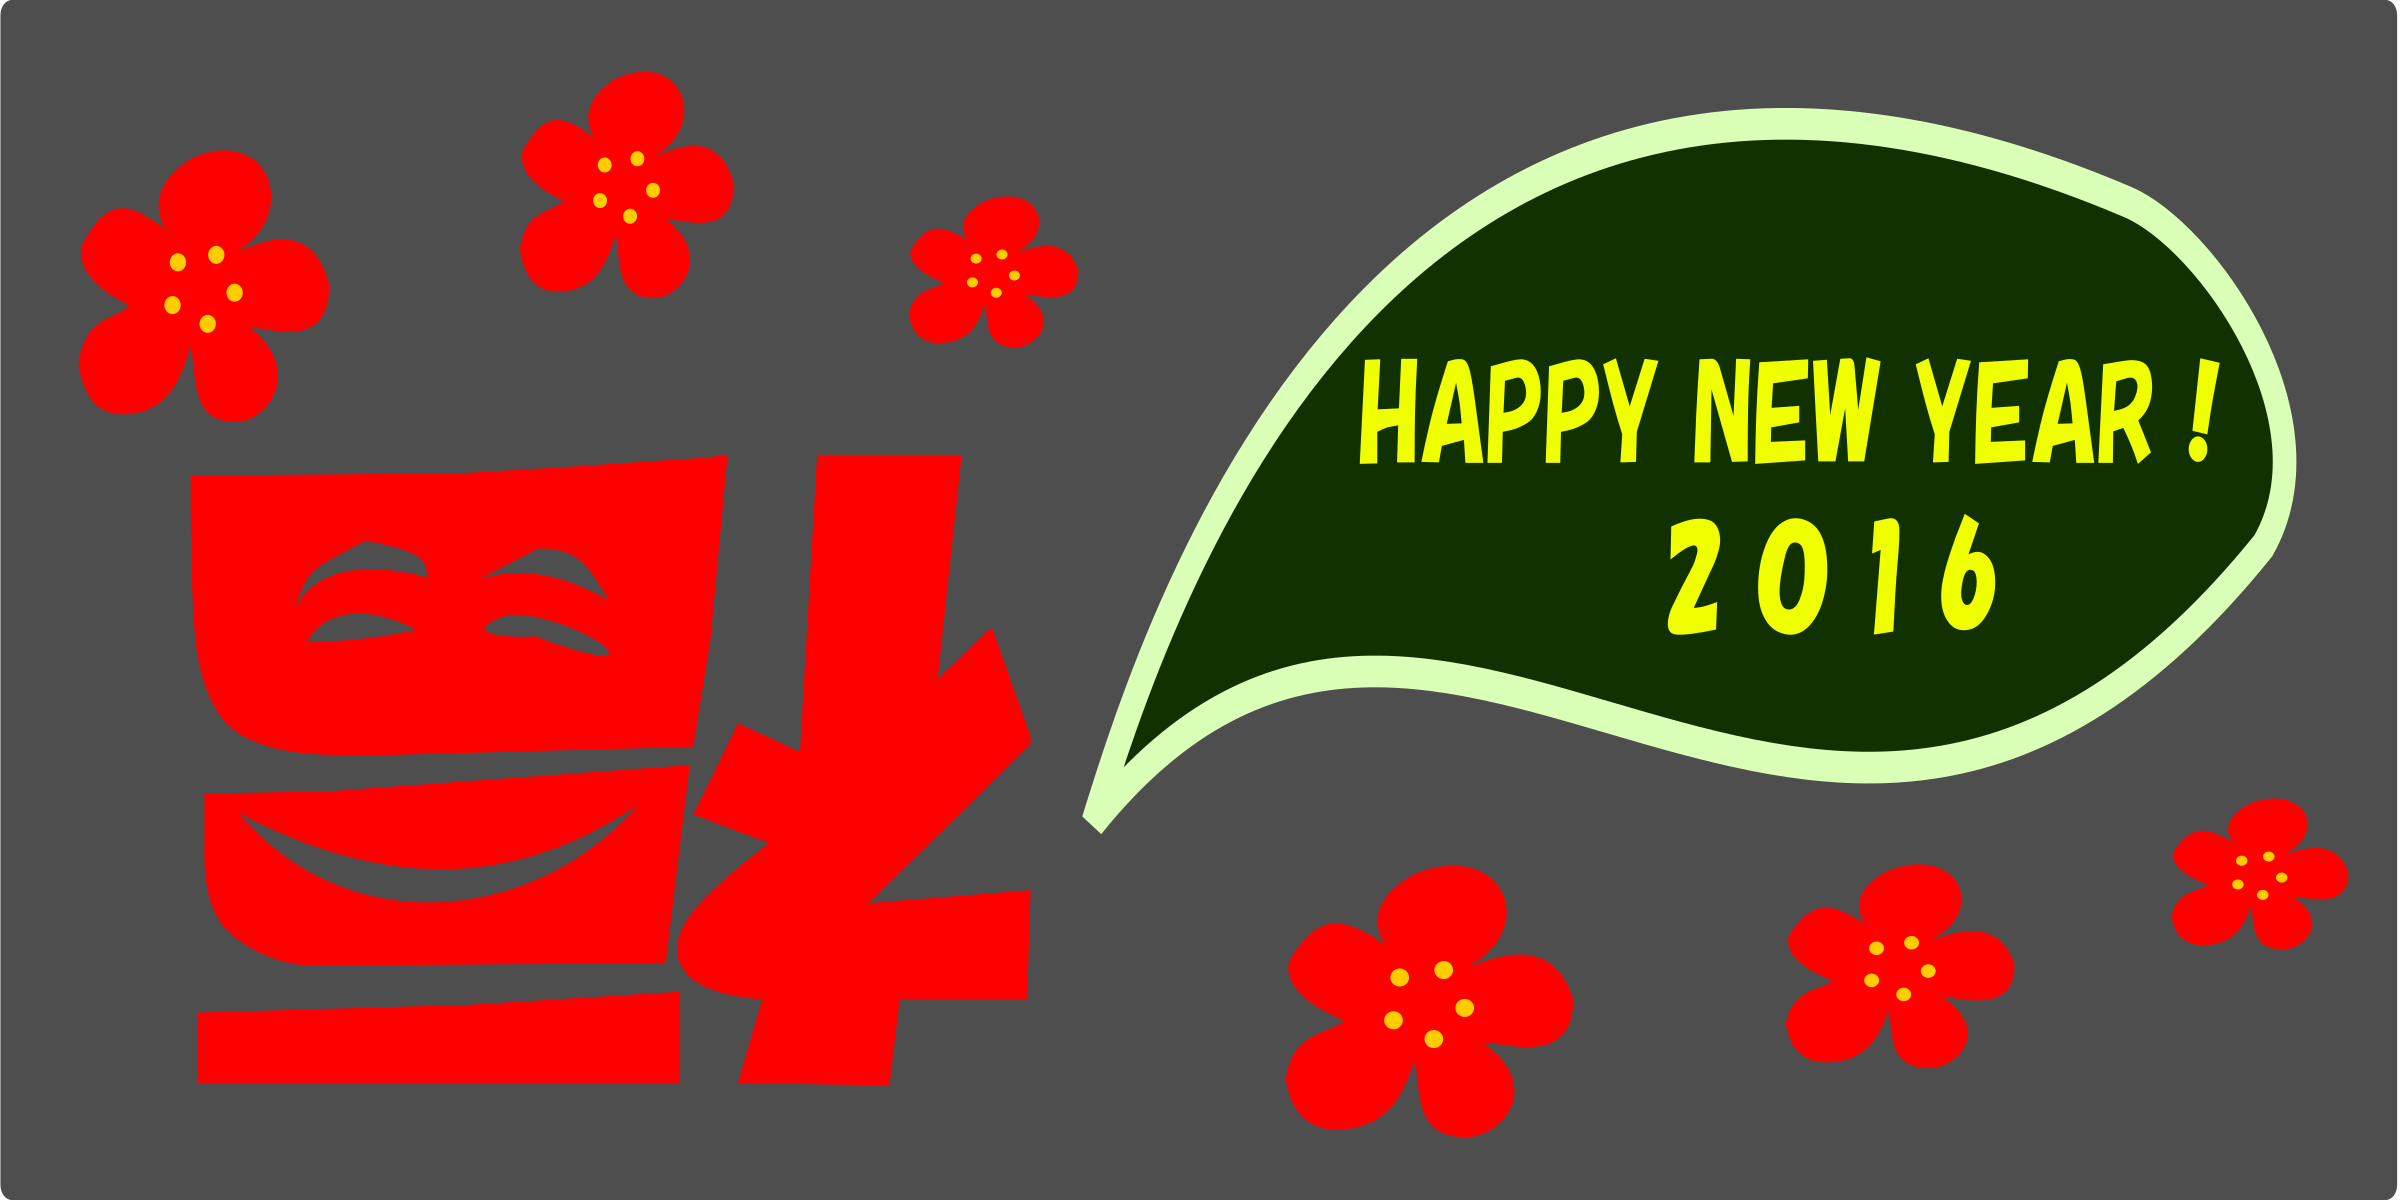 Happy New Year 2016 modified by yamachem